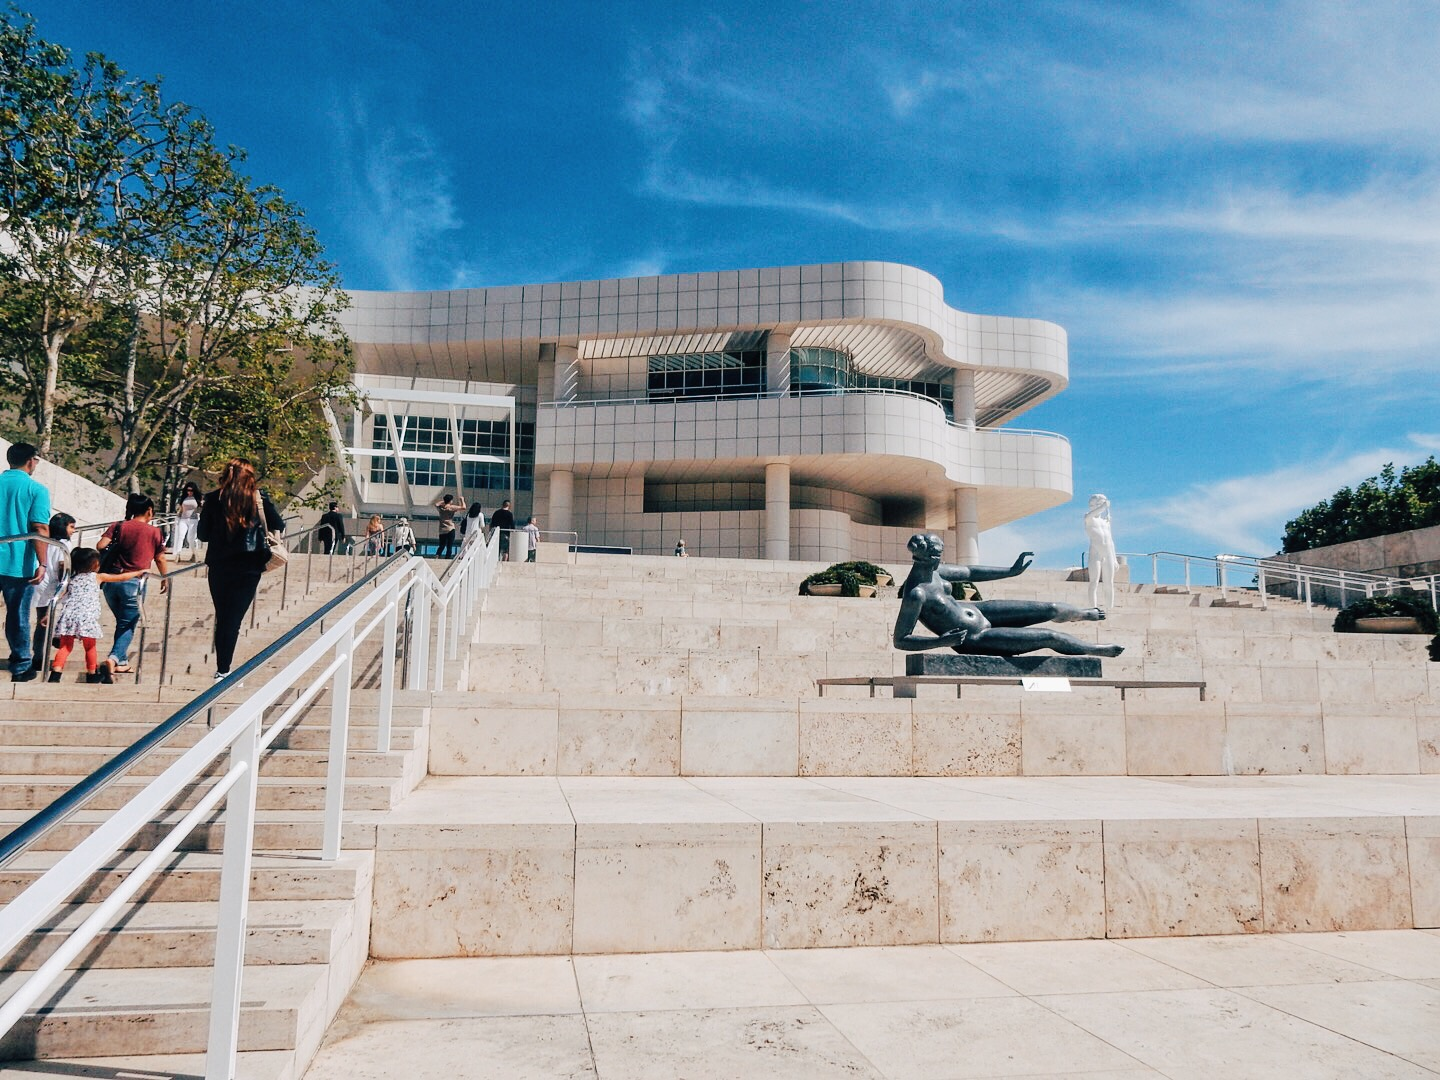 Entrance to the Getty Center